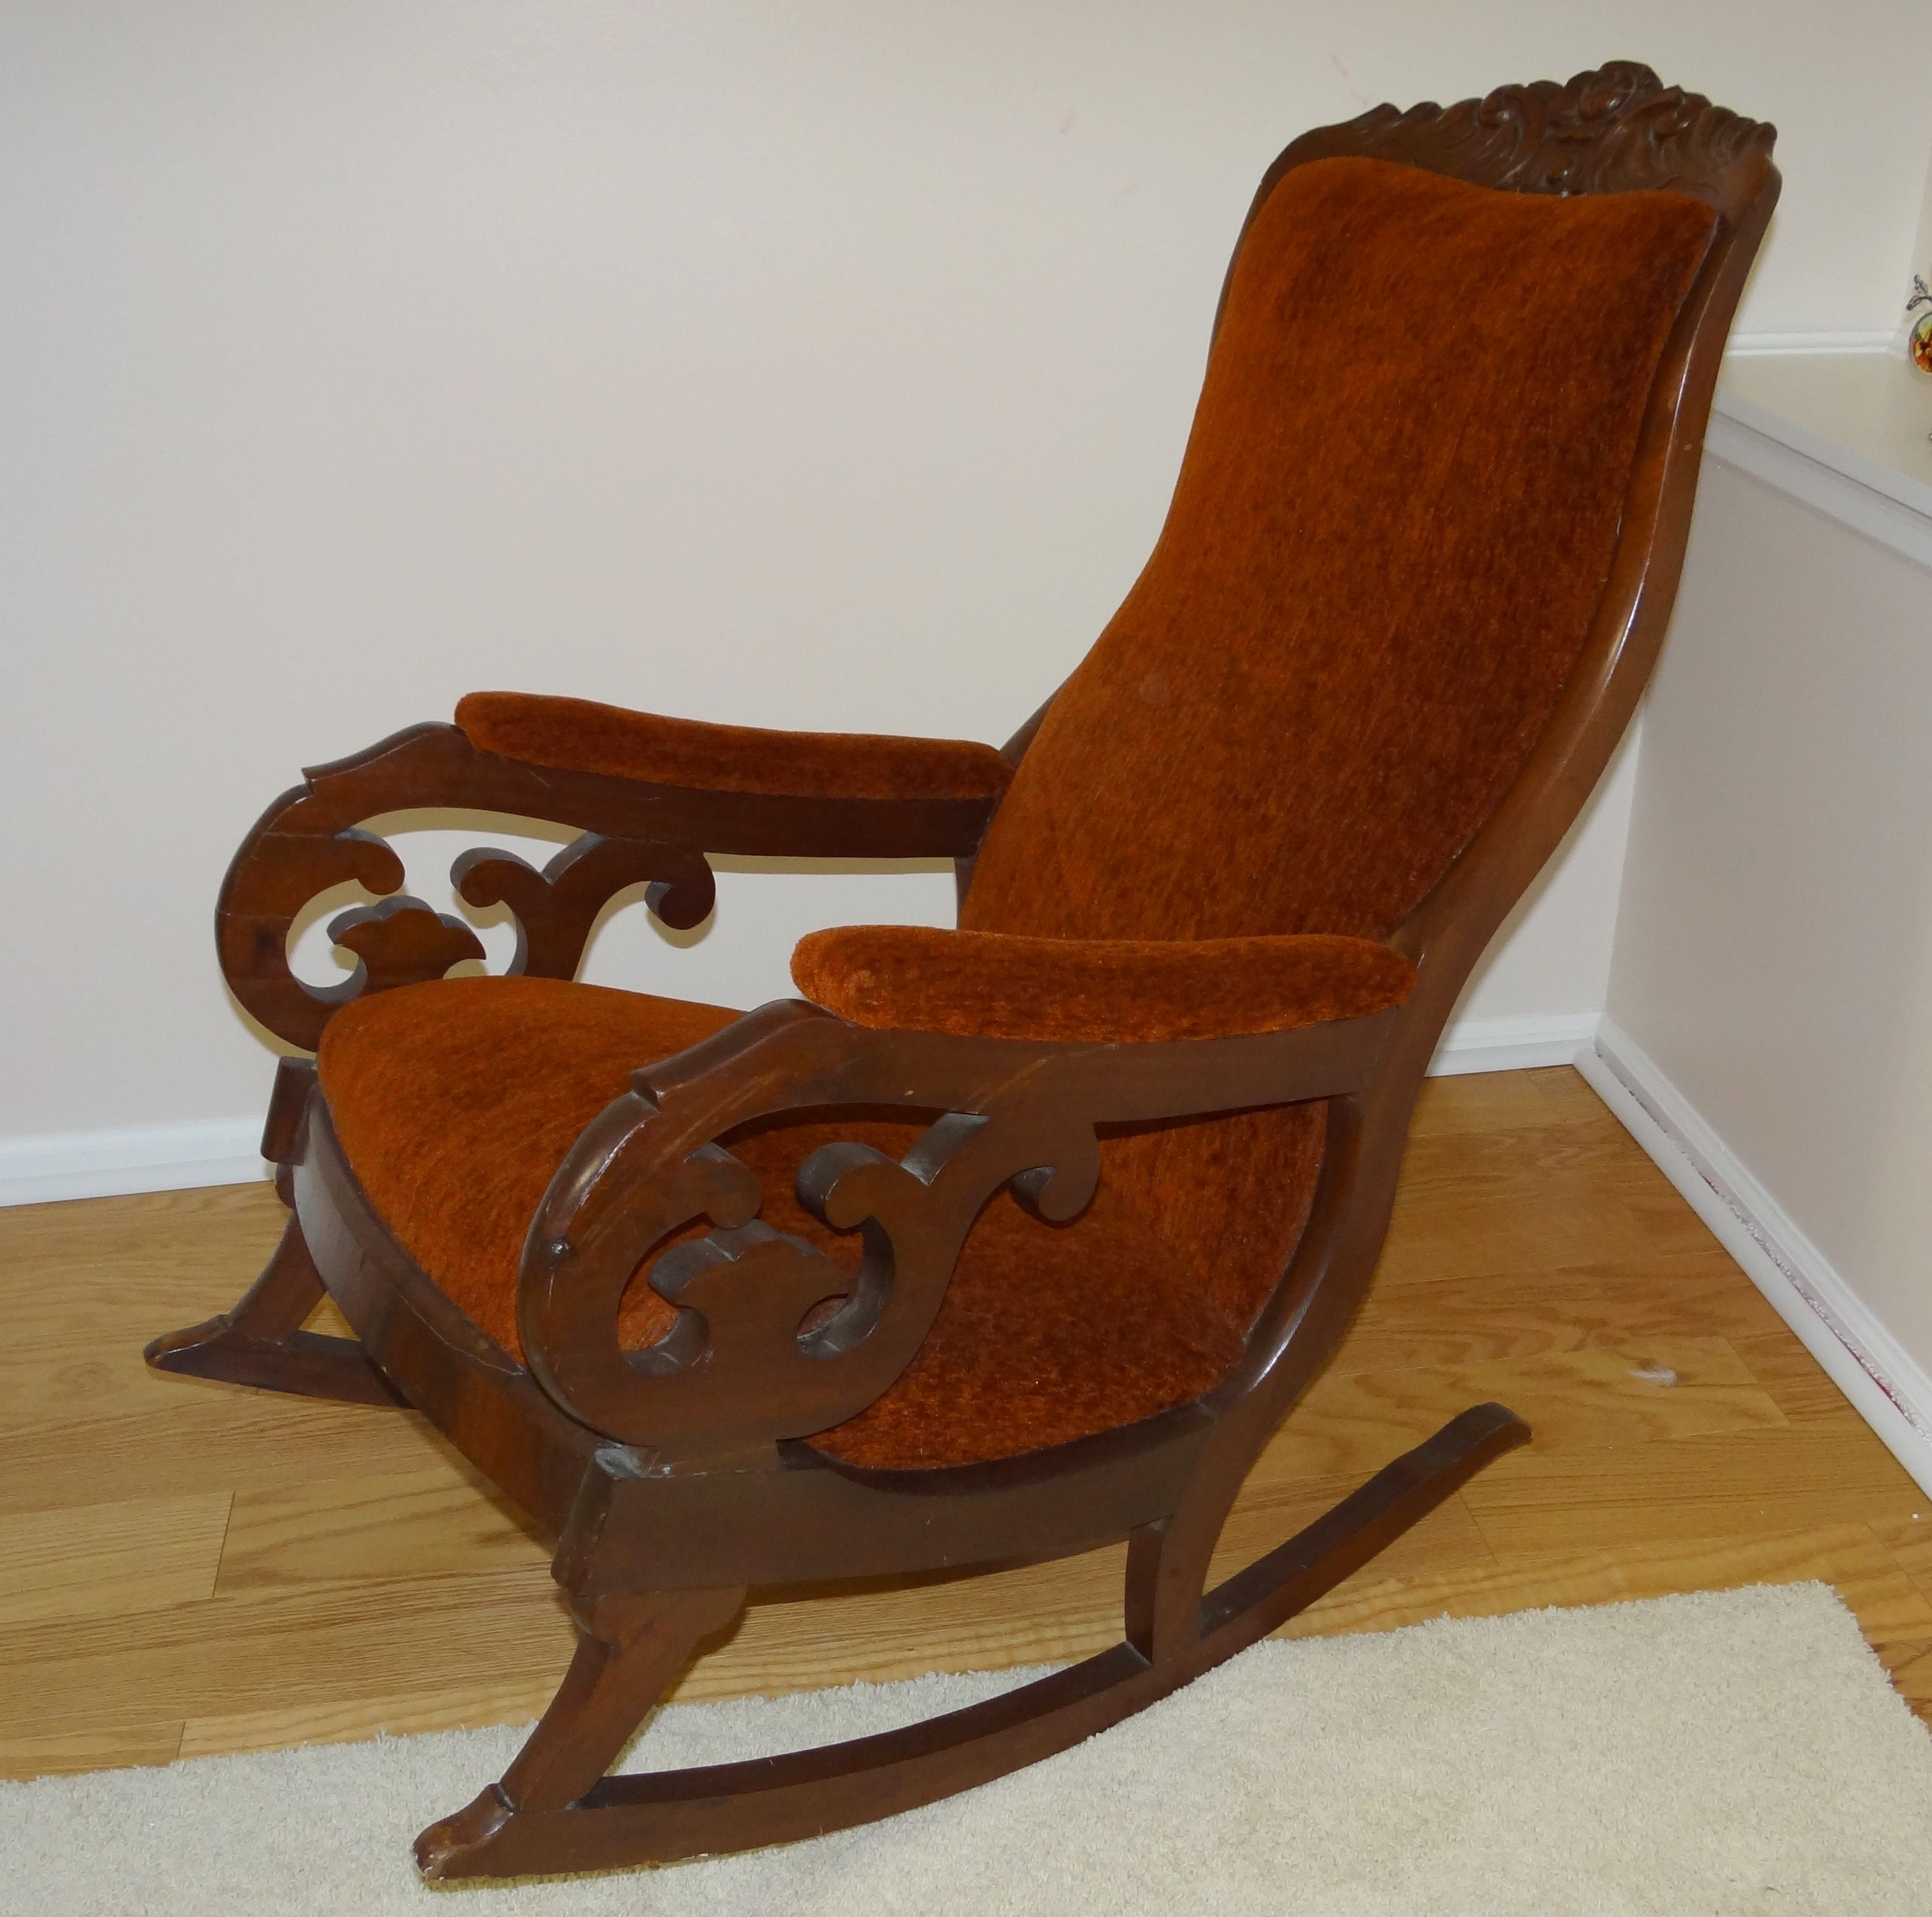 Upholstered rocking chairs pin by tina hall on rocking chairsswings  pinterest  chair